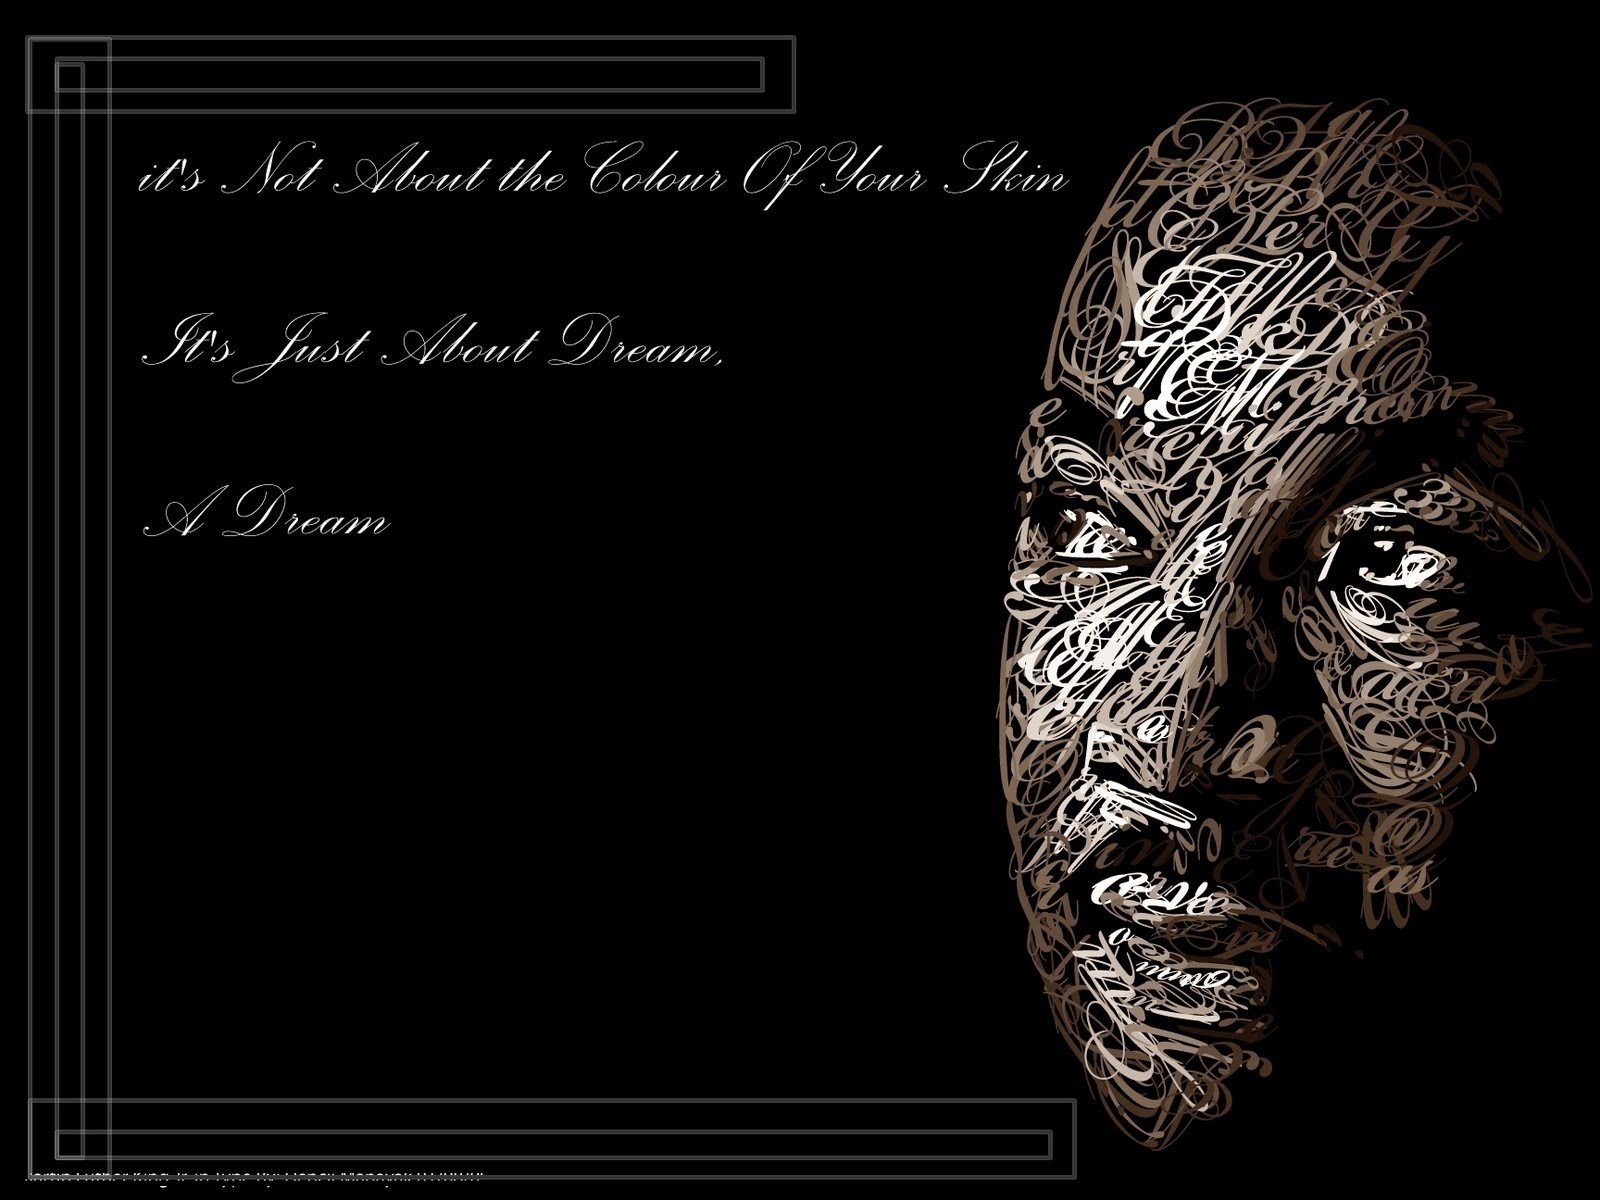 Martin Luther King Jr. Wallpapers | New High Definition Wallpapers